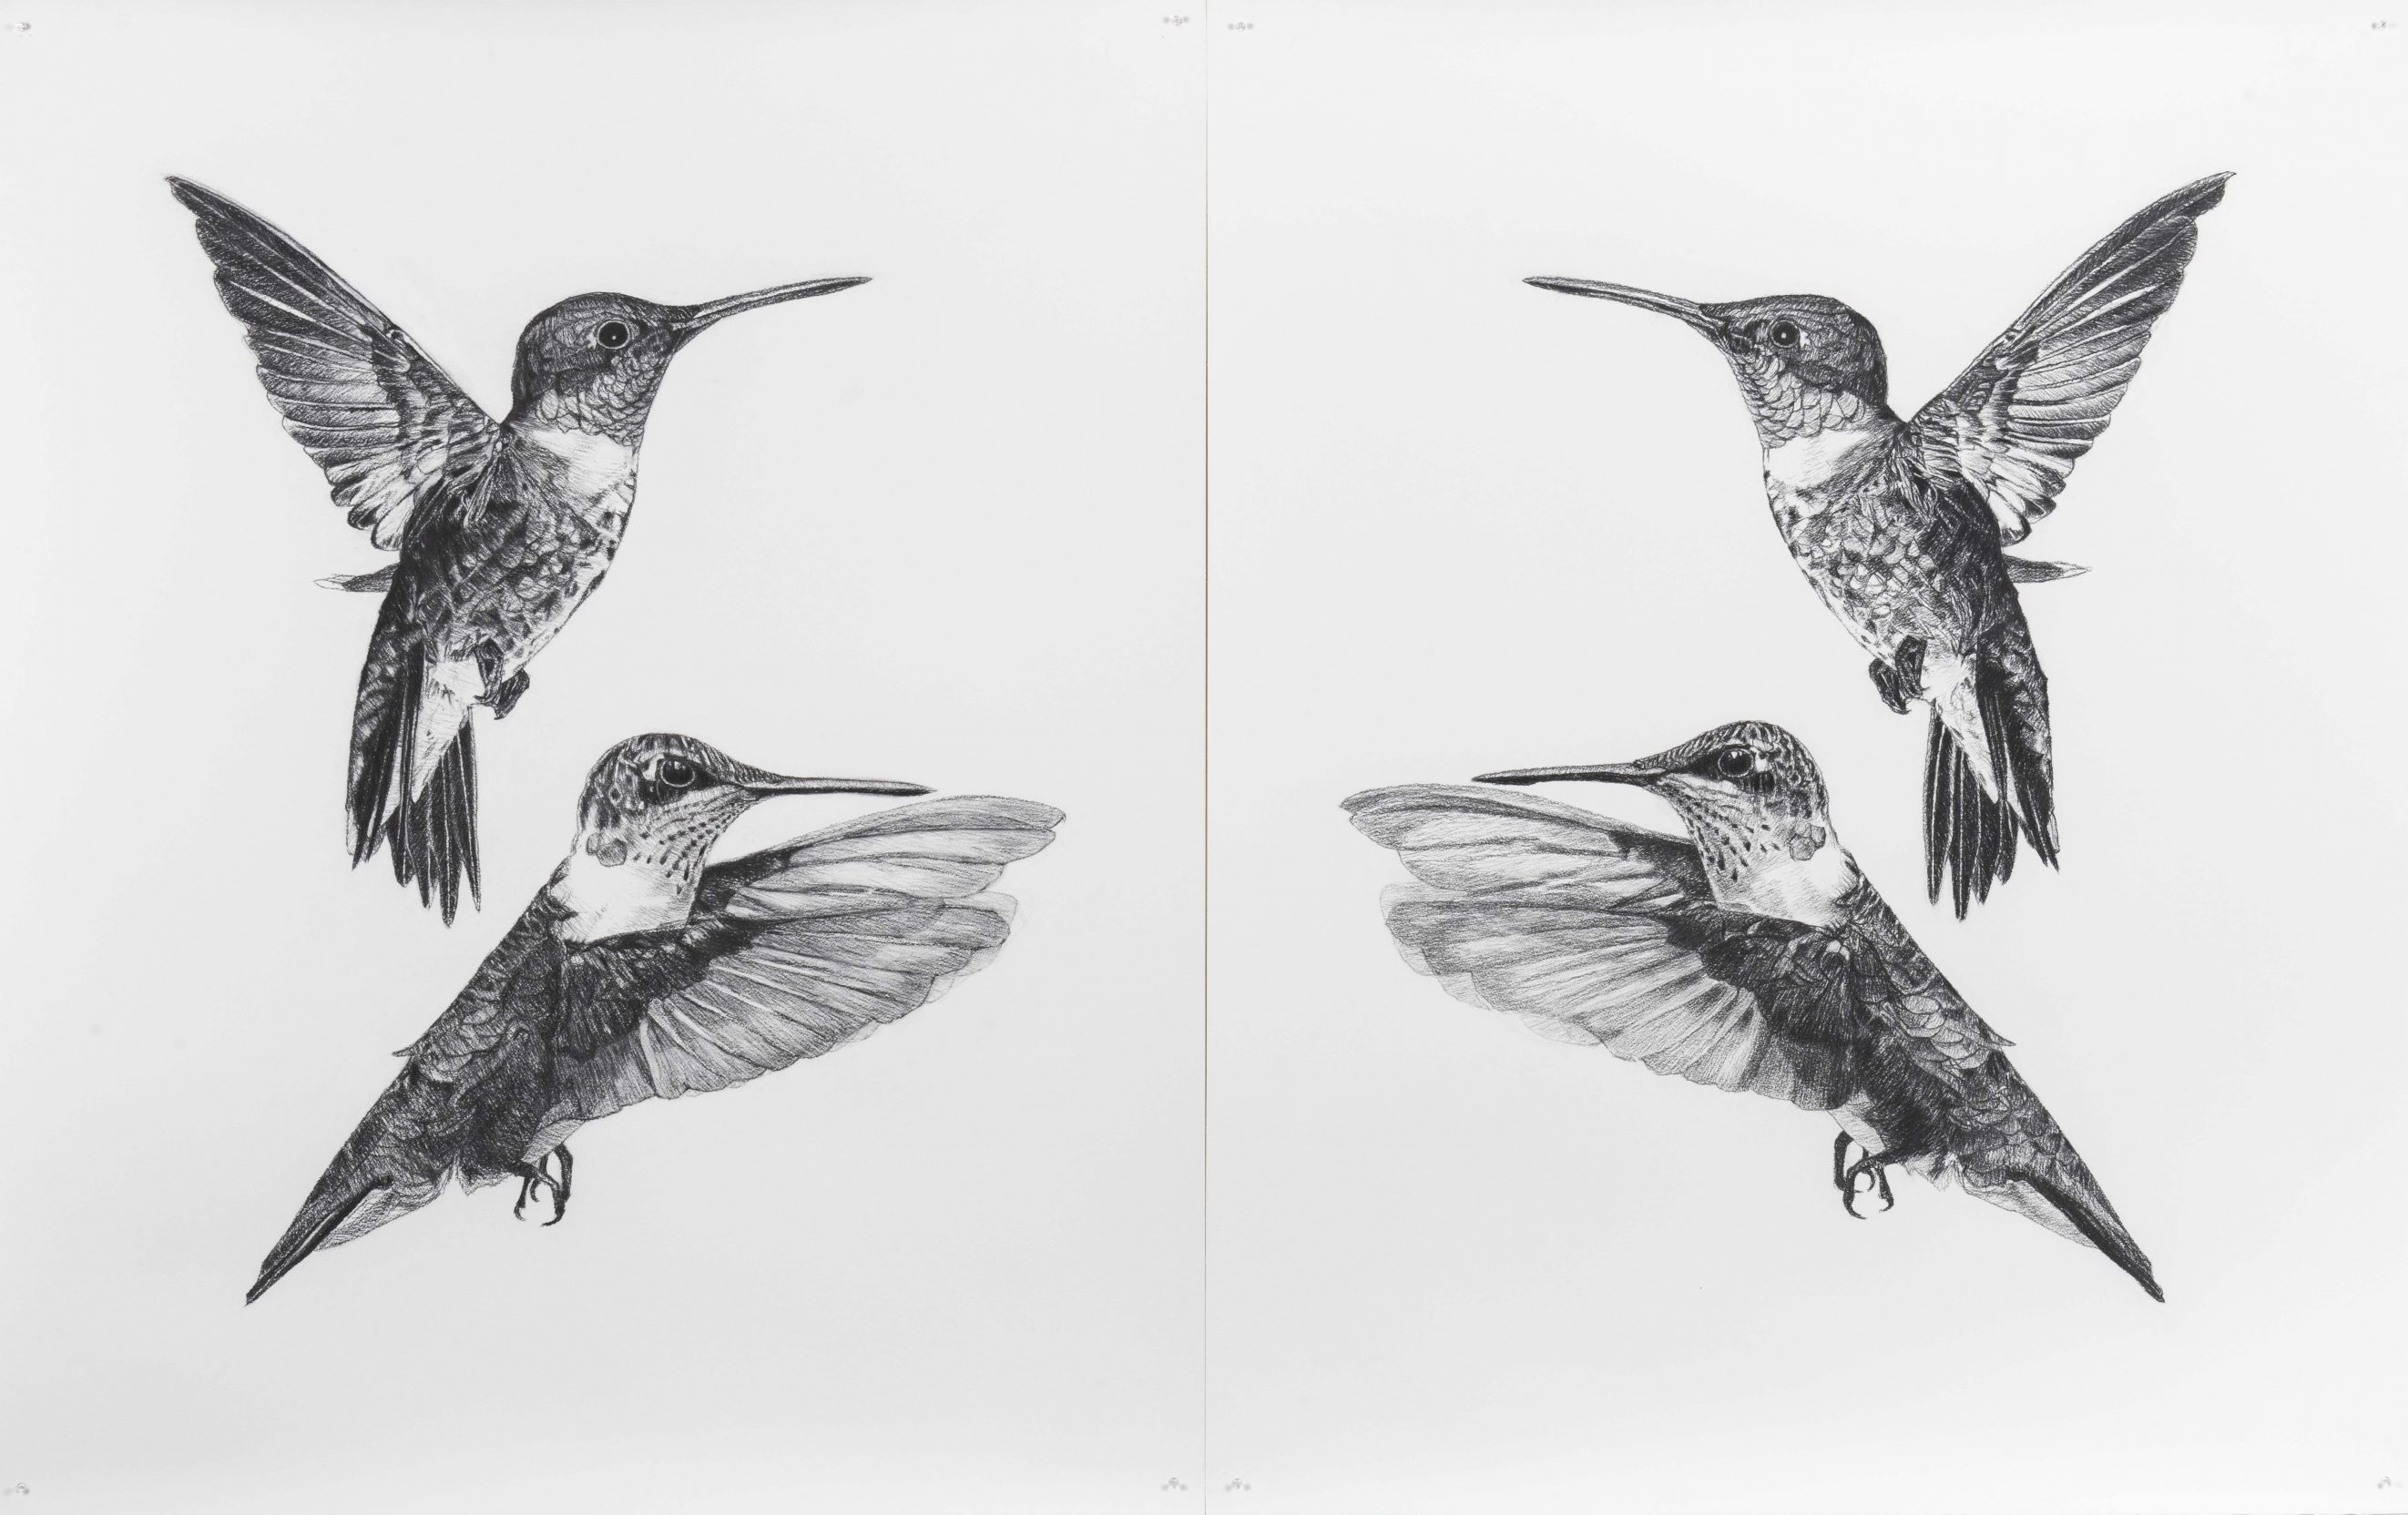 Where Do I End and You Begin (Archilochus colubris) _ carbon on paper _ 2 x drawings 1.53 m H x 1.22 m W each